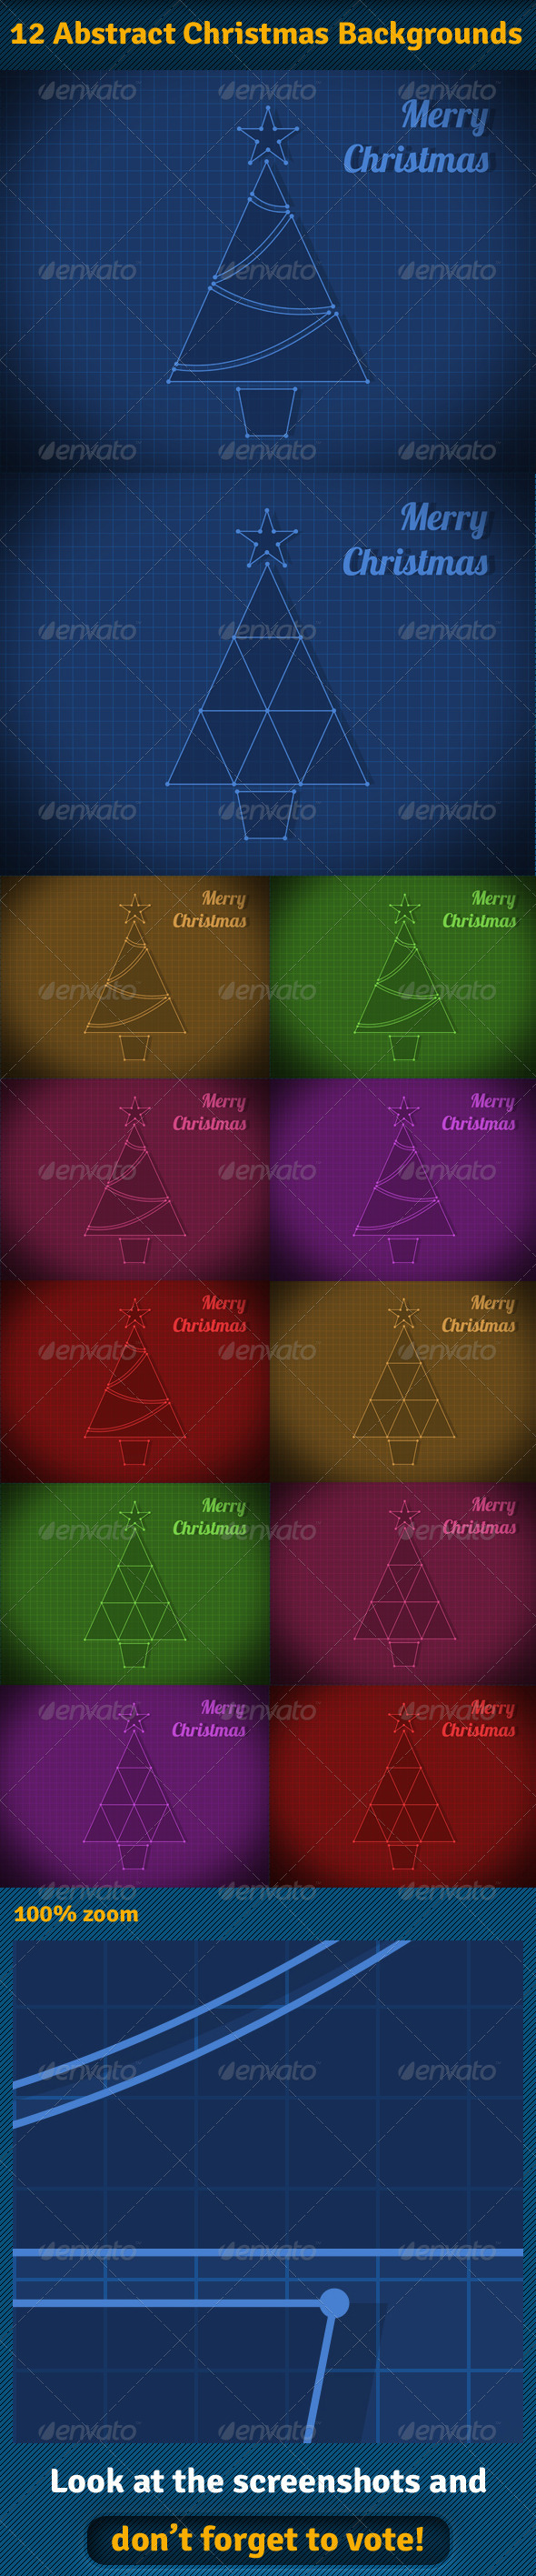 Abstract Christmas Backgrounds - Abstract Backgrounds